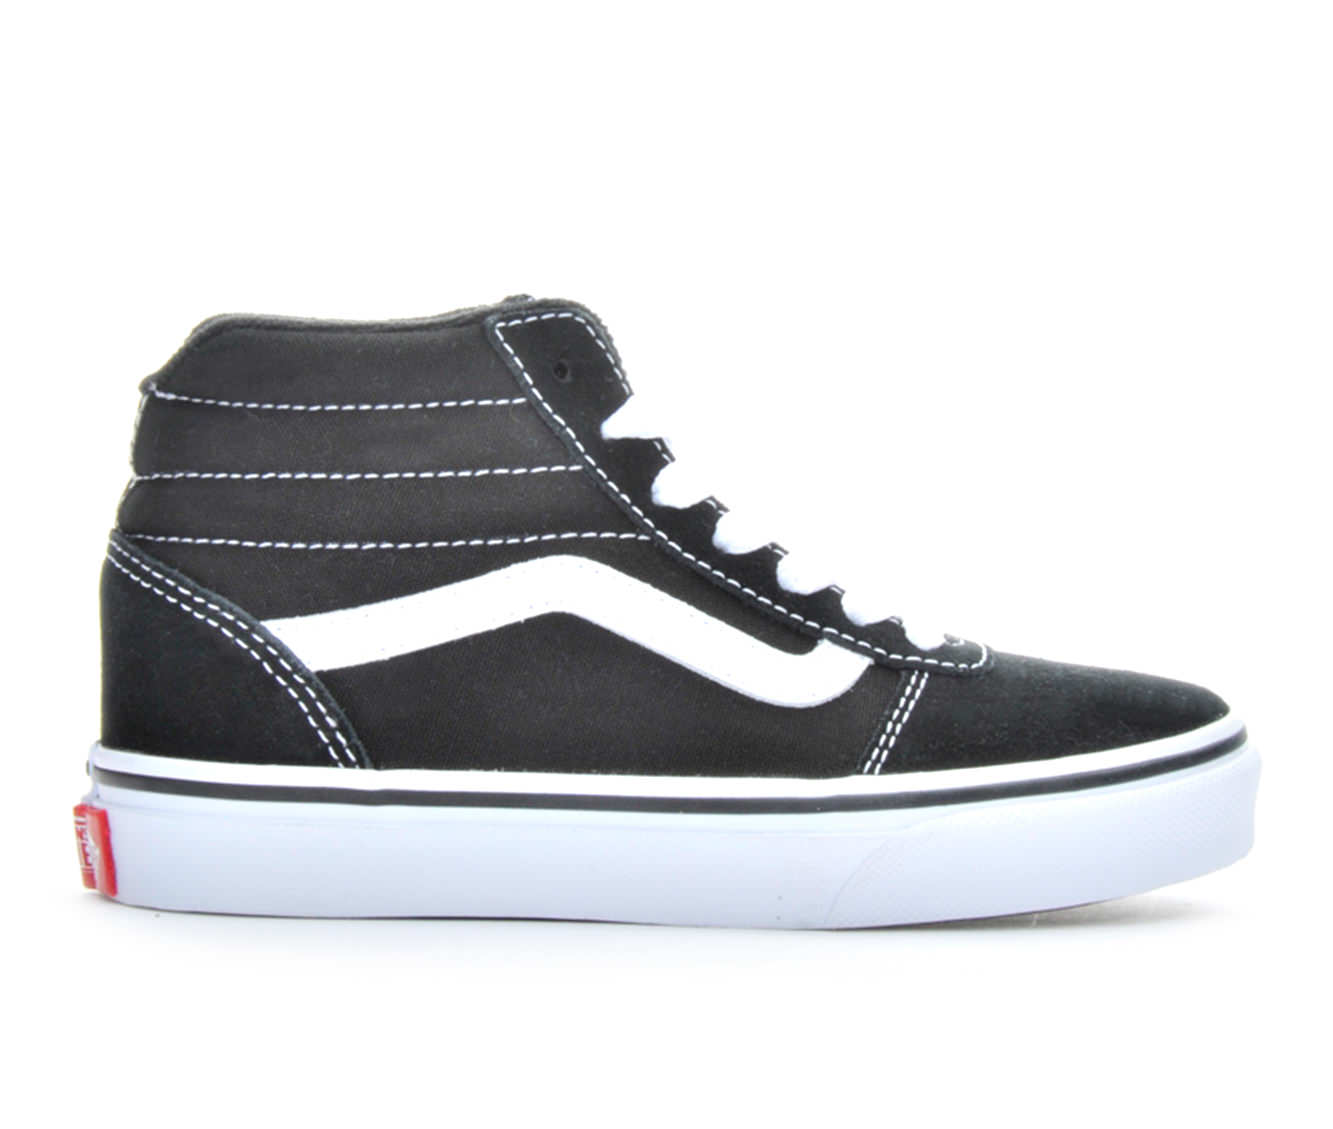 Boys' Vans Ward Hi Skate Shoes (Black)